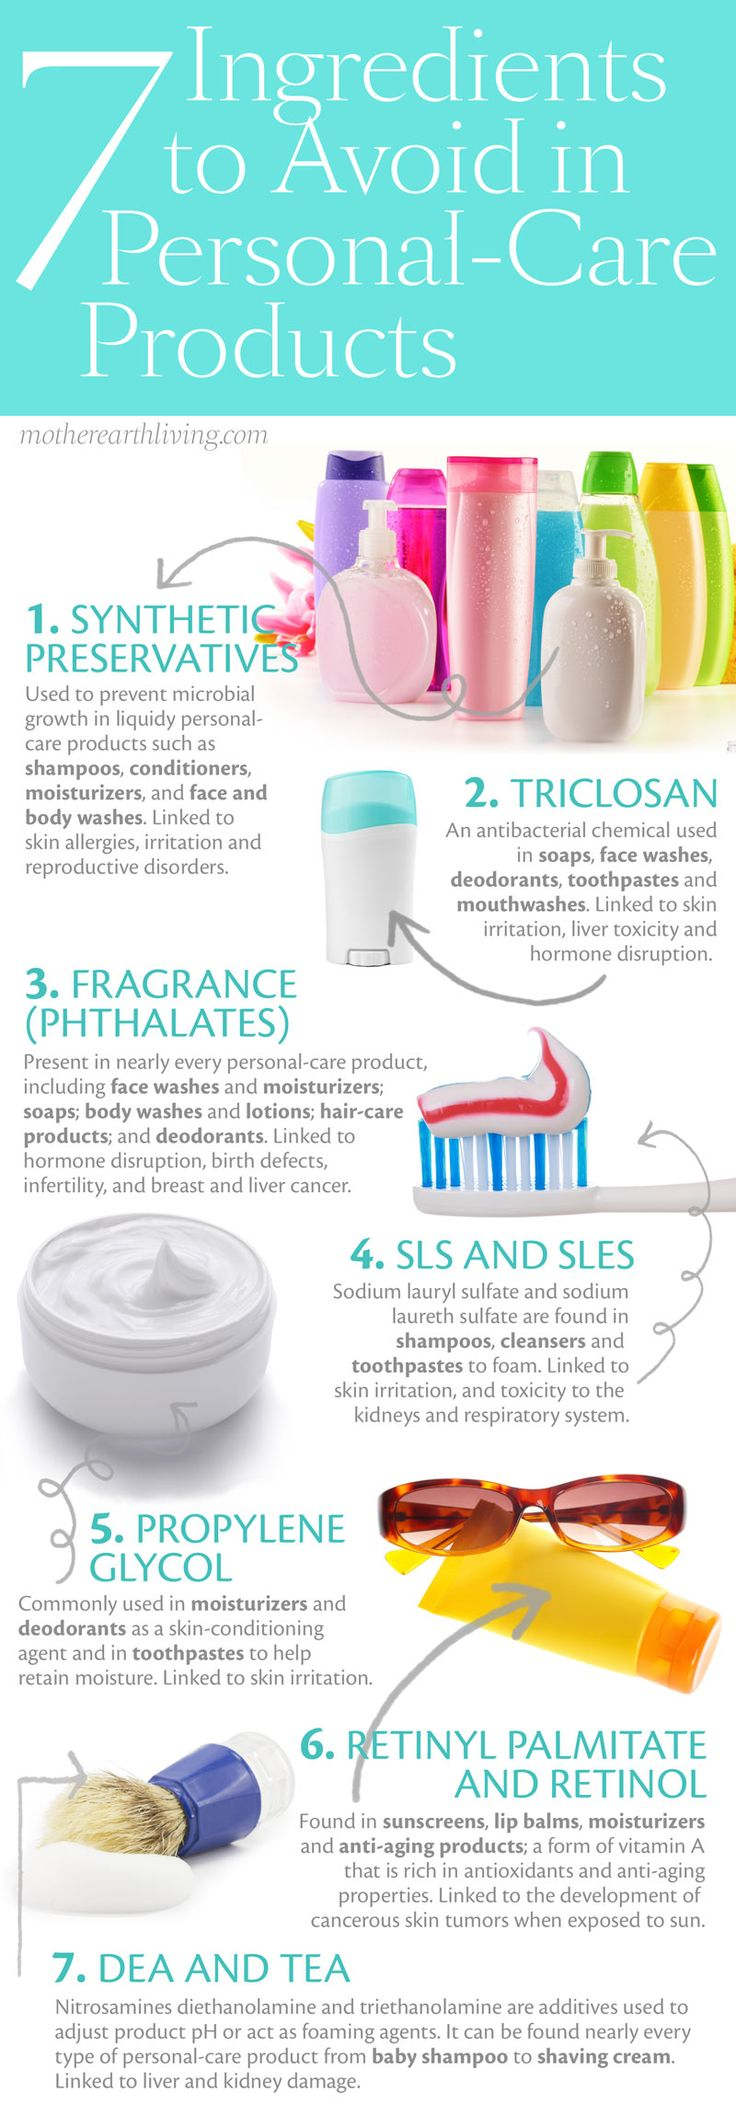 The Ban List: 7 Ingredients to Avoid in Personal-Care Products - Green Living - Natural Home & Garden